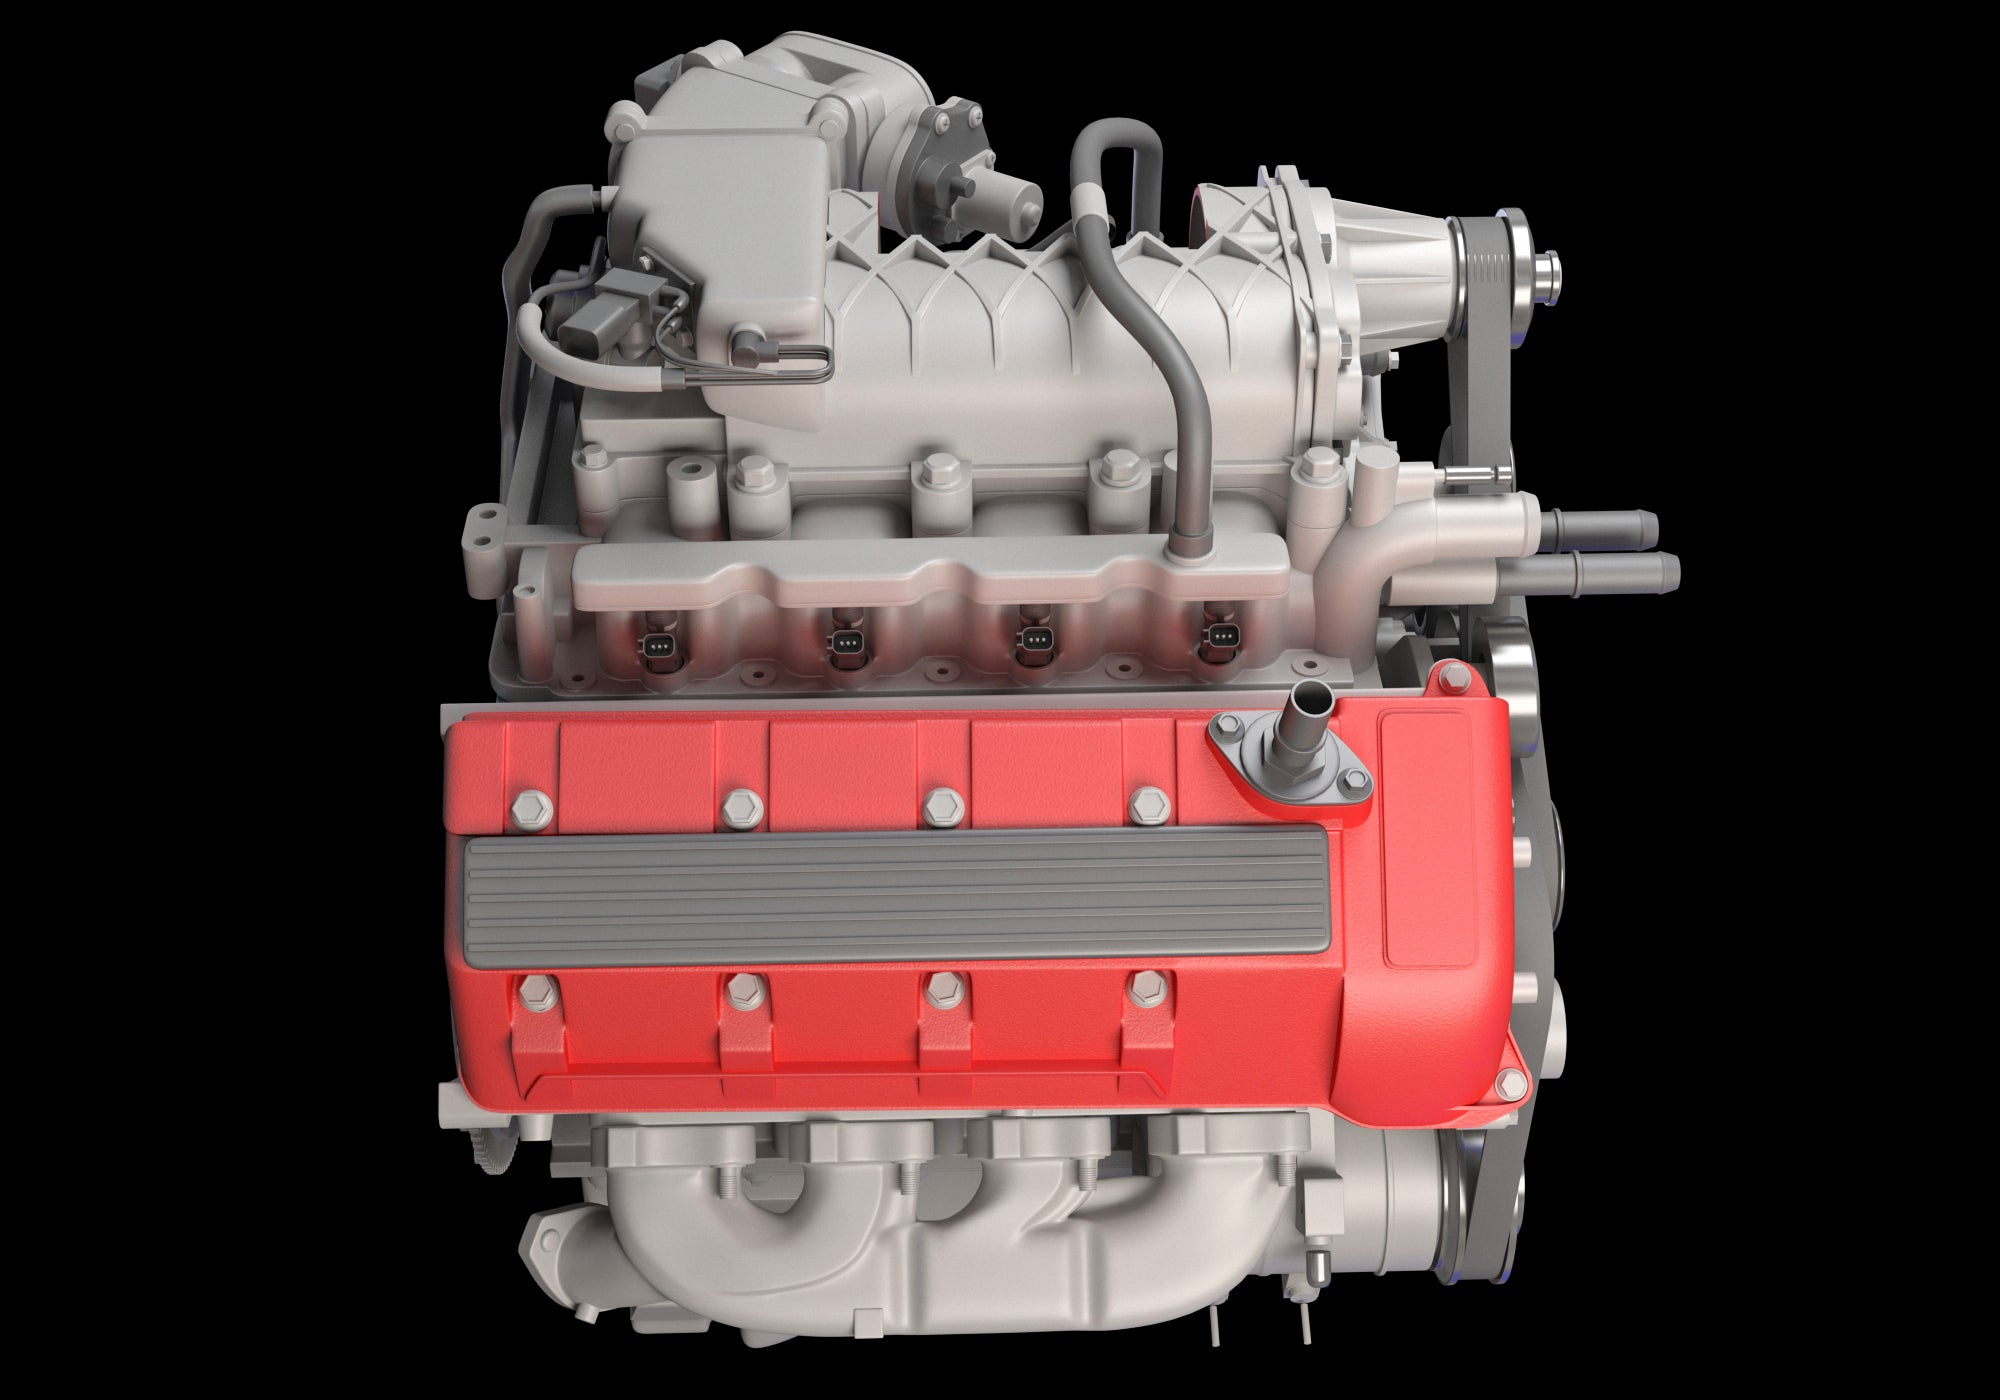 Animated Cutaway V8 Engine Ignition